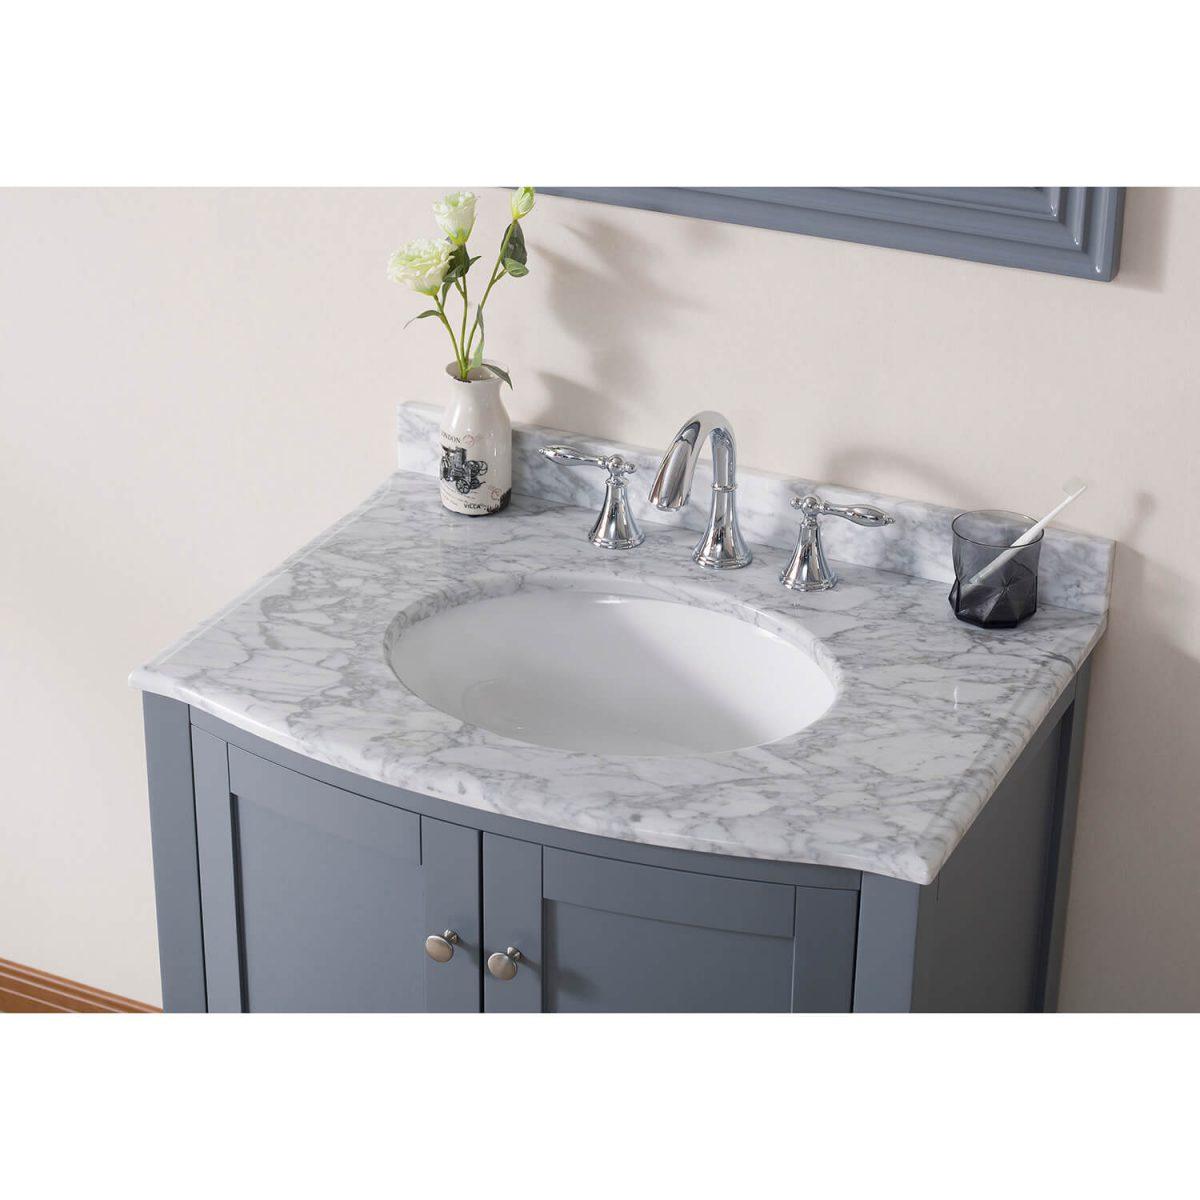 30″ Countertop – White Carrara Marble – CT5002 3022 03